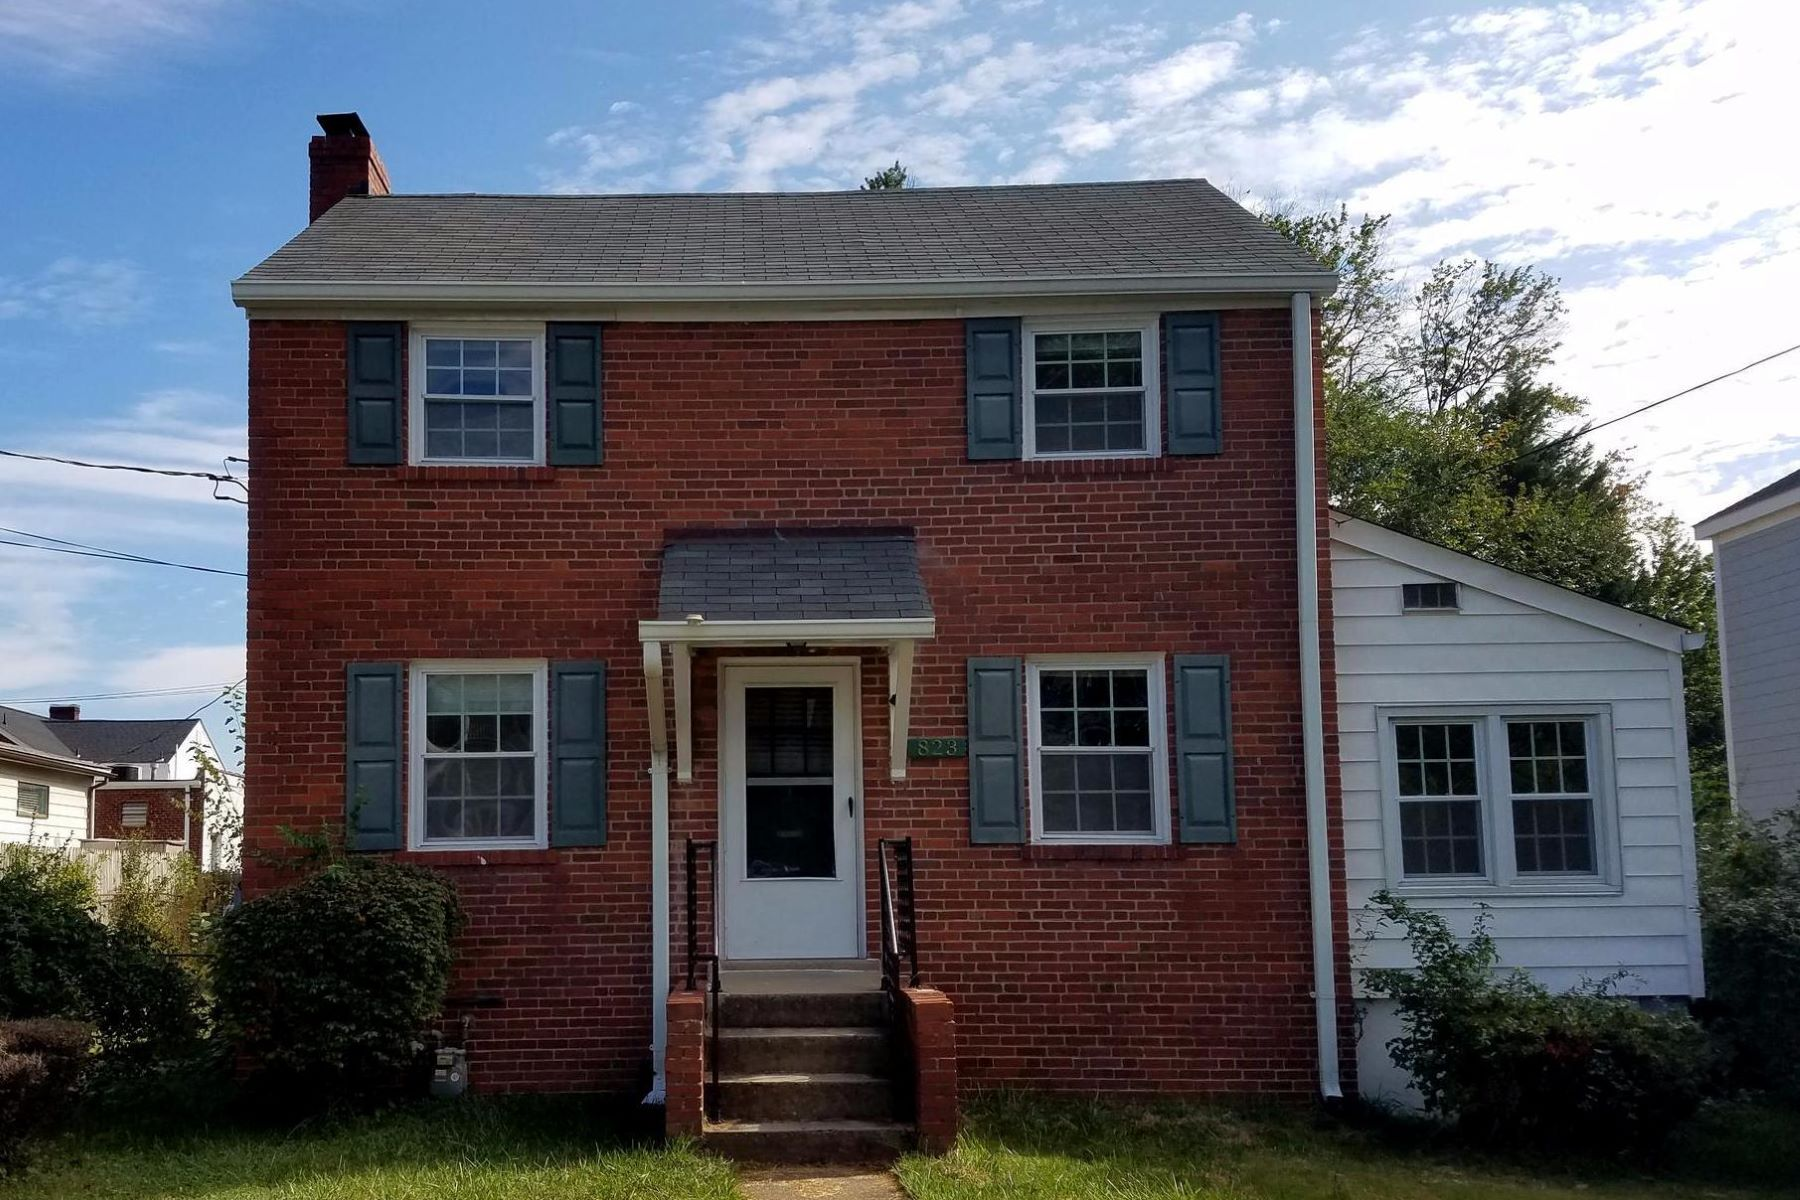 Single Family Home for Rent at 823 Greenbrier St 823 Greenbrier St Arlington, Virginia 22205 United States